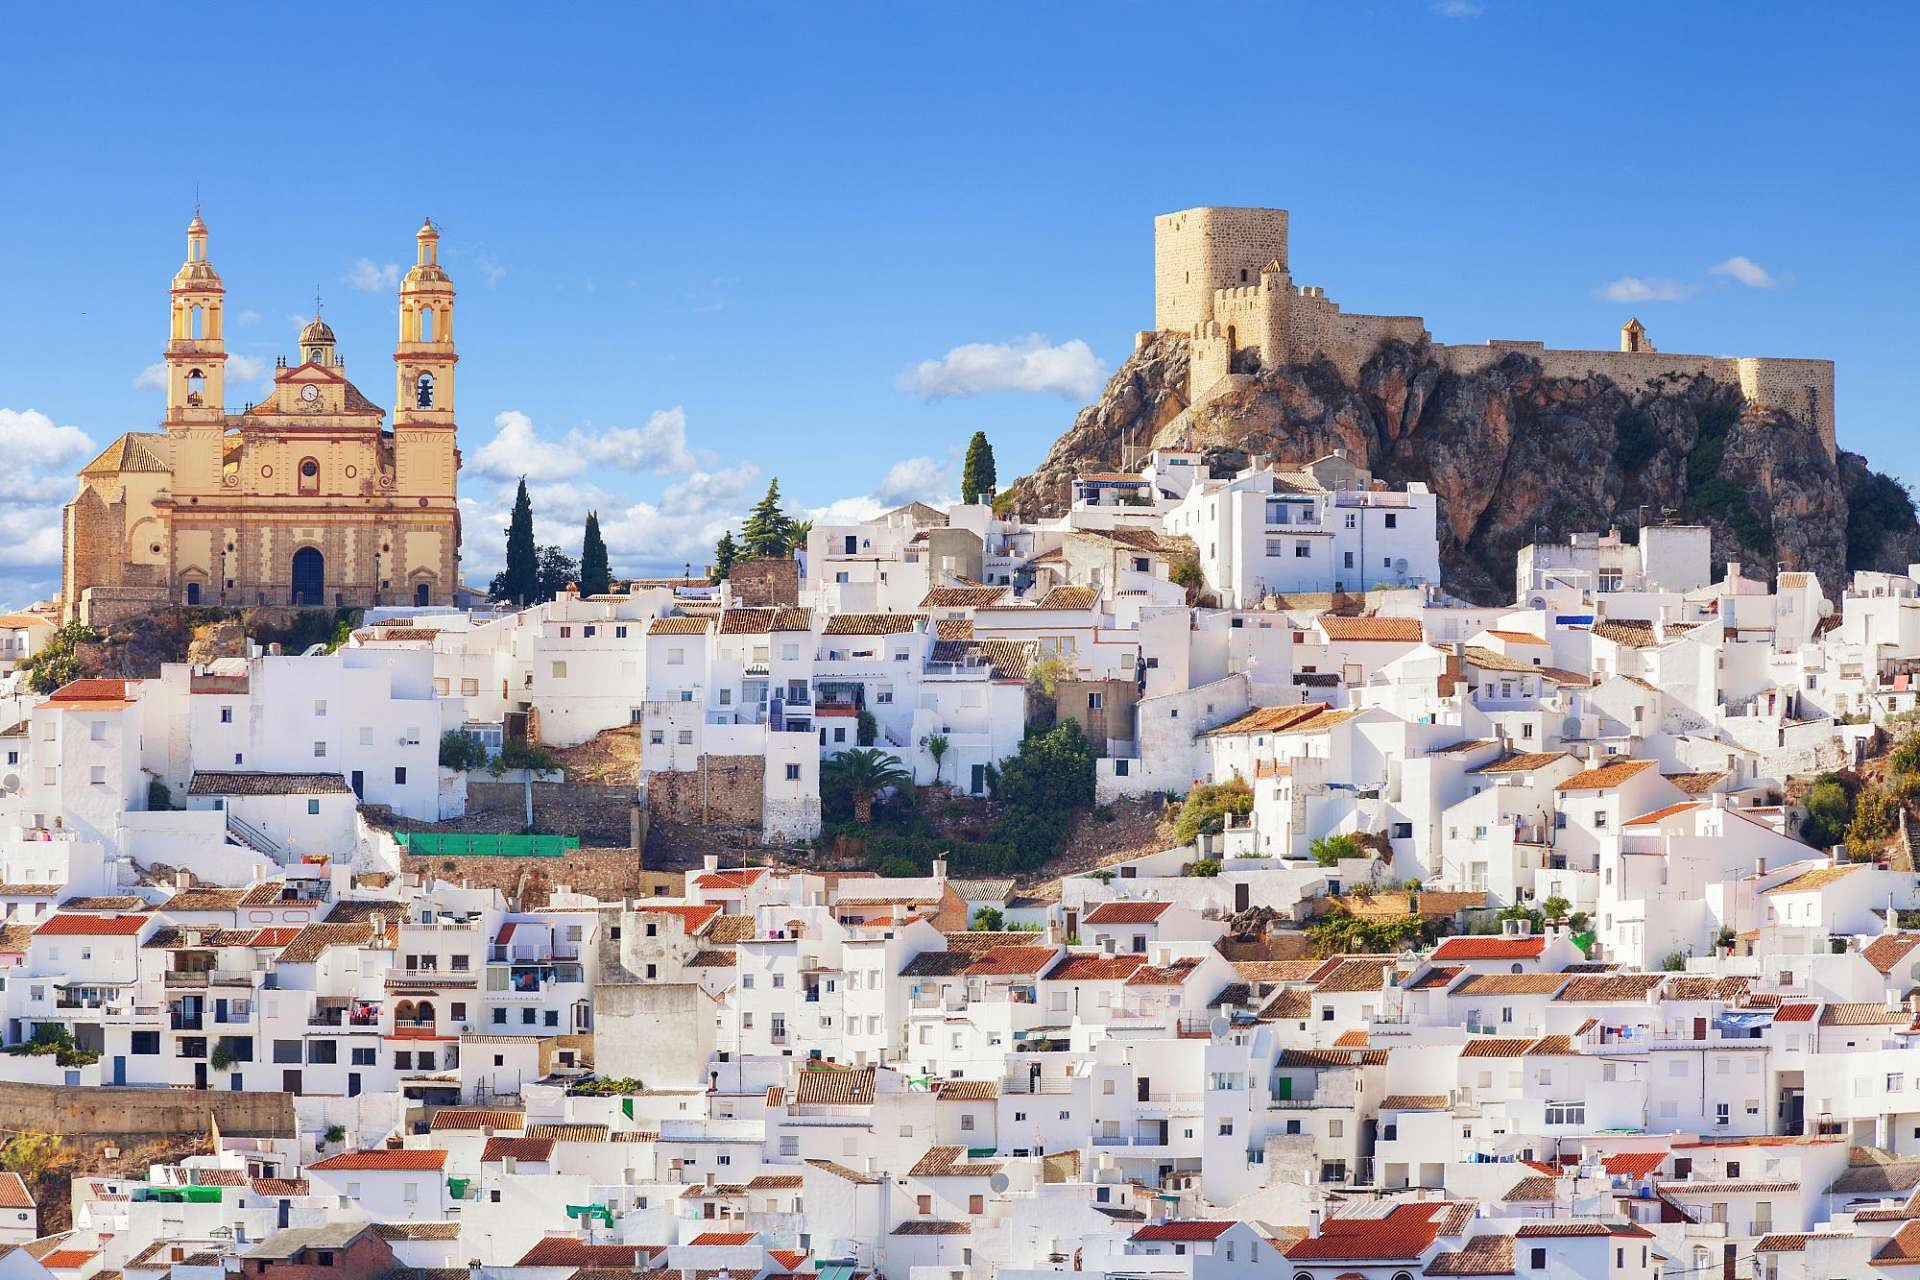 White town: Olvera at the foot of the Sierra Grazalema